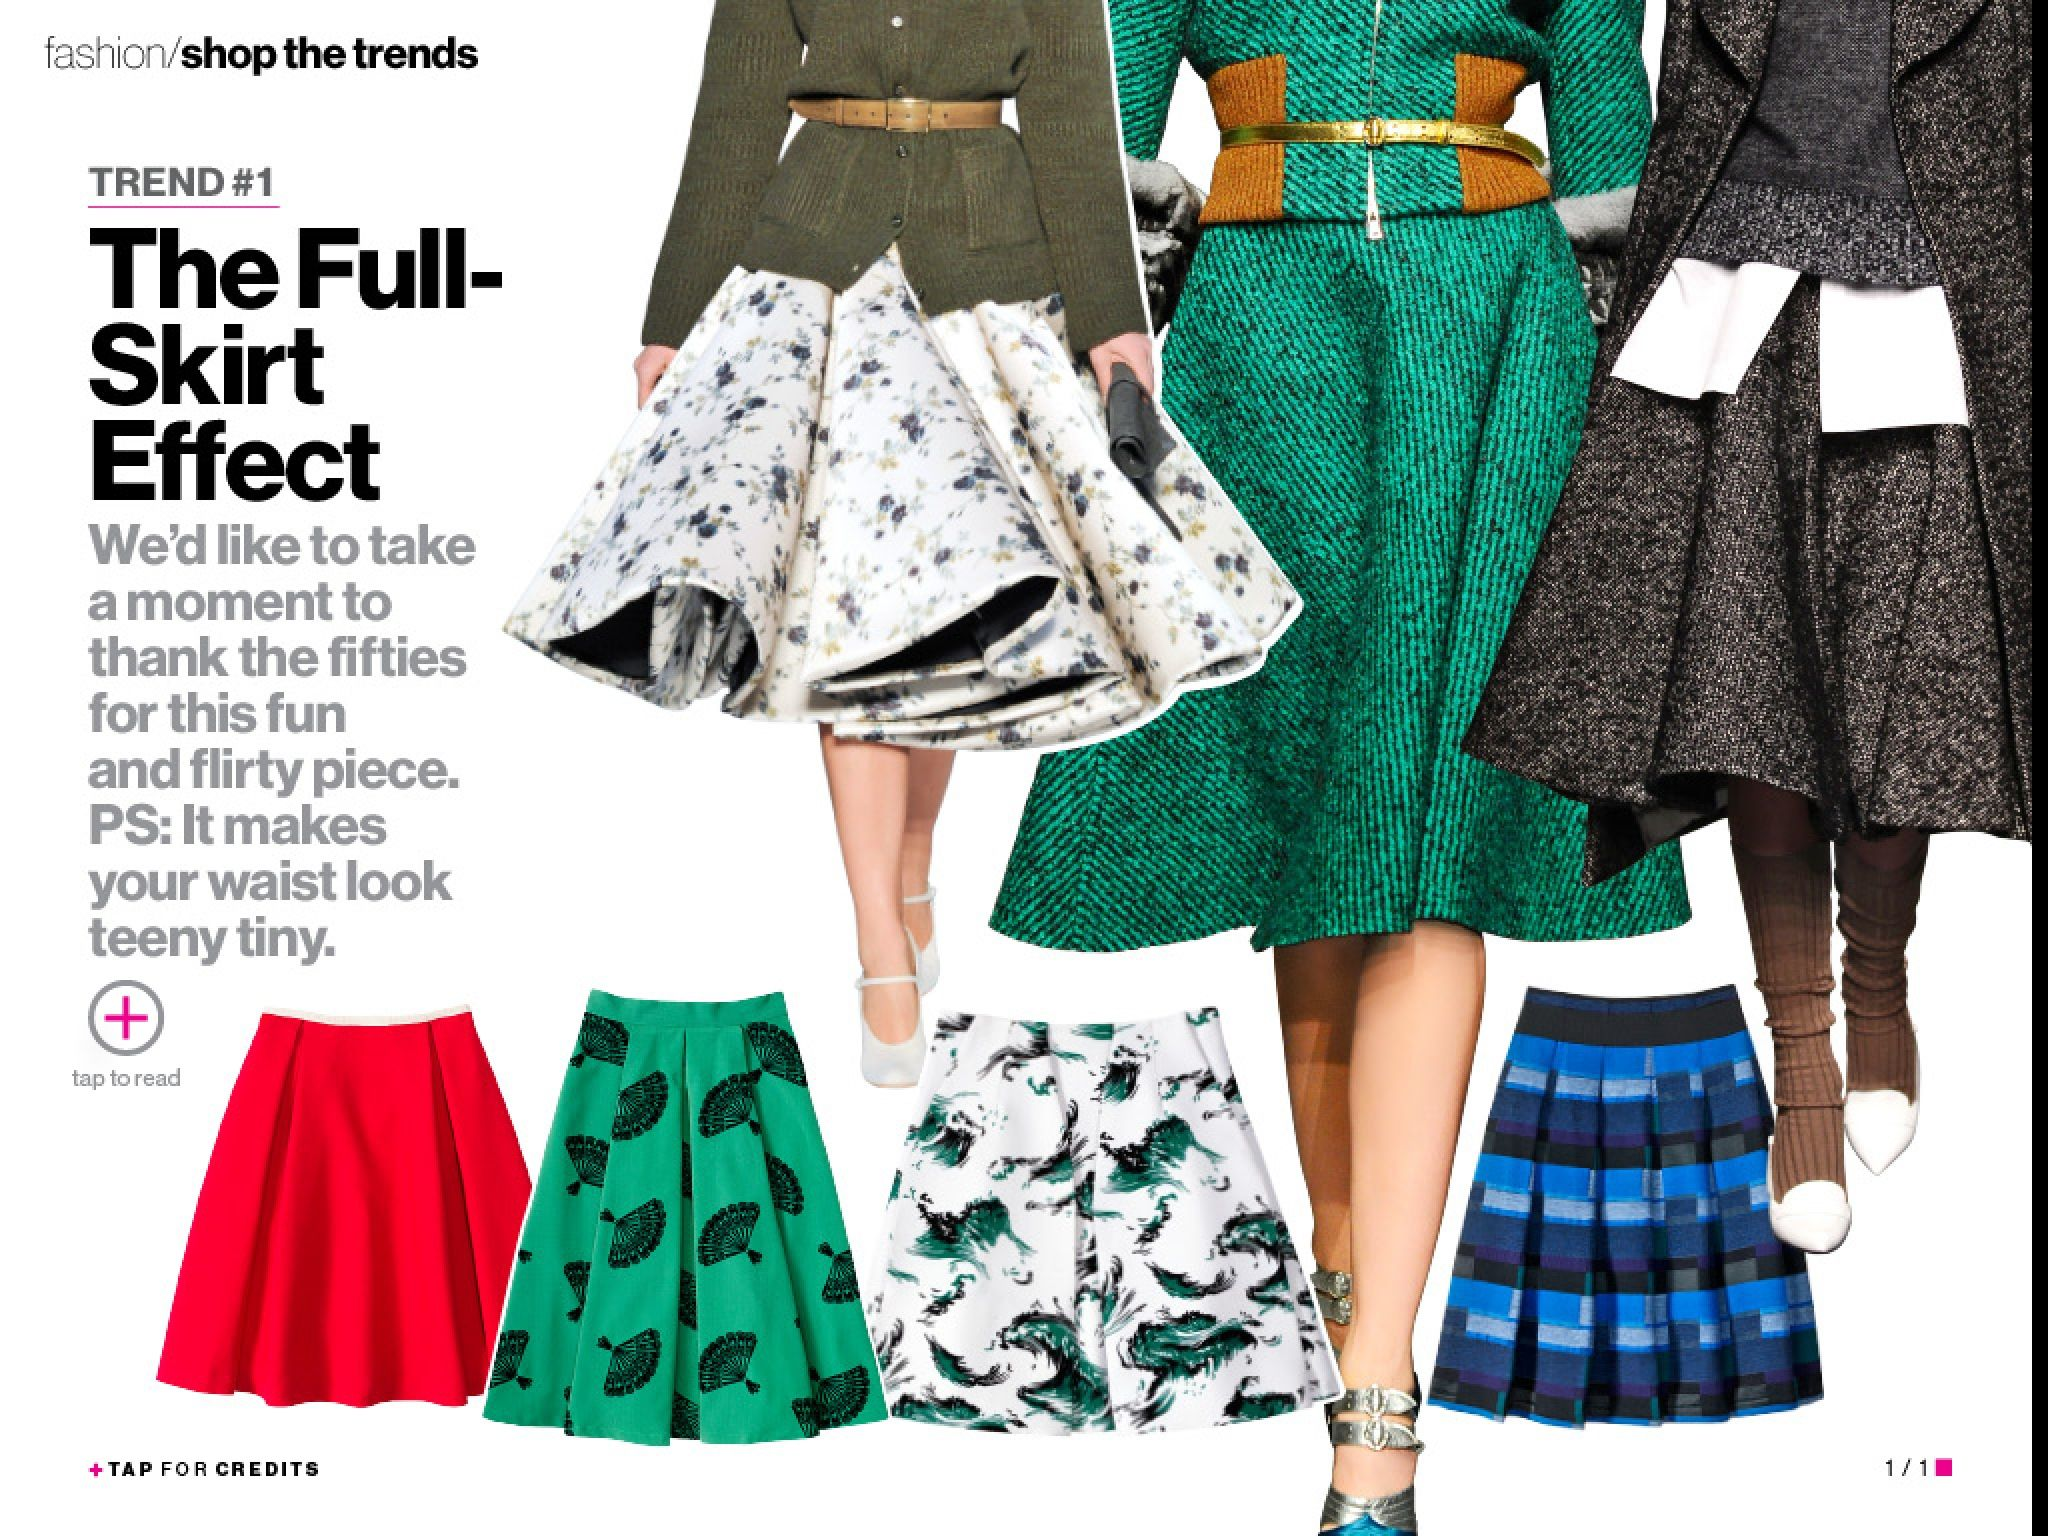 Fall fashion 2013. Full skirts. Glamour magazine. I CAN'T BELIEVE THESE SKIRTS ARE BACK. I LIKE THEM.